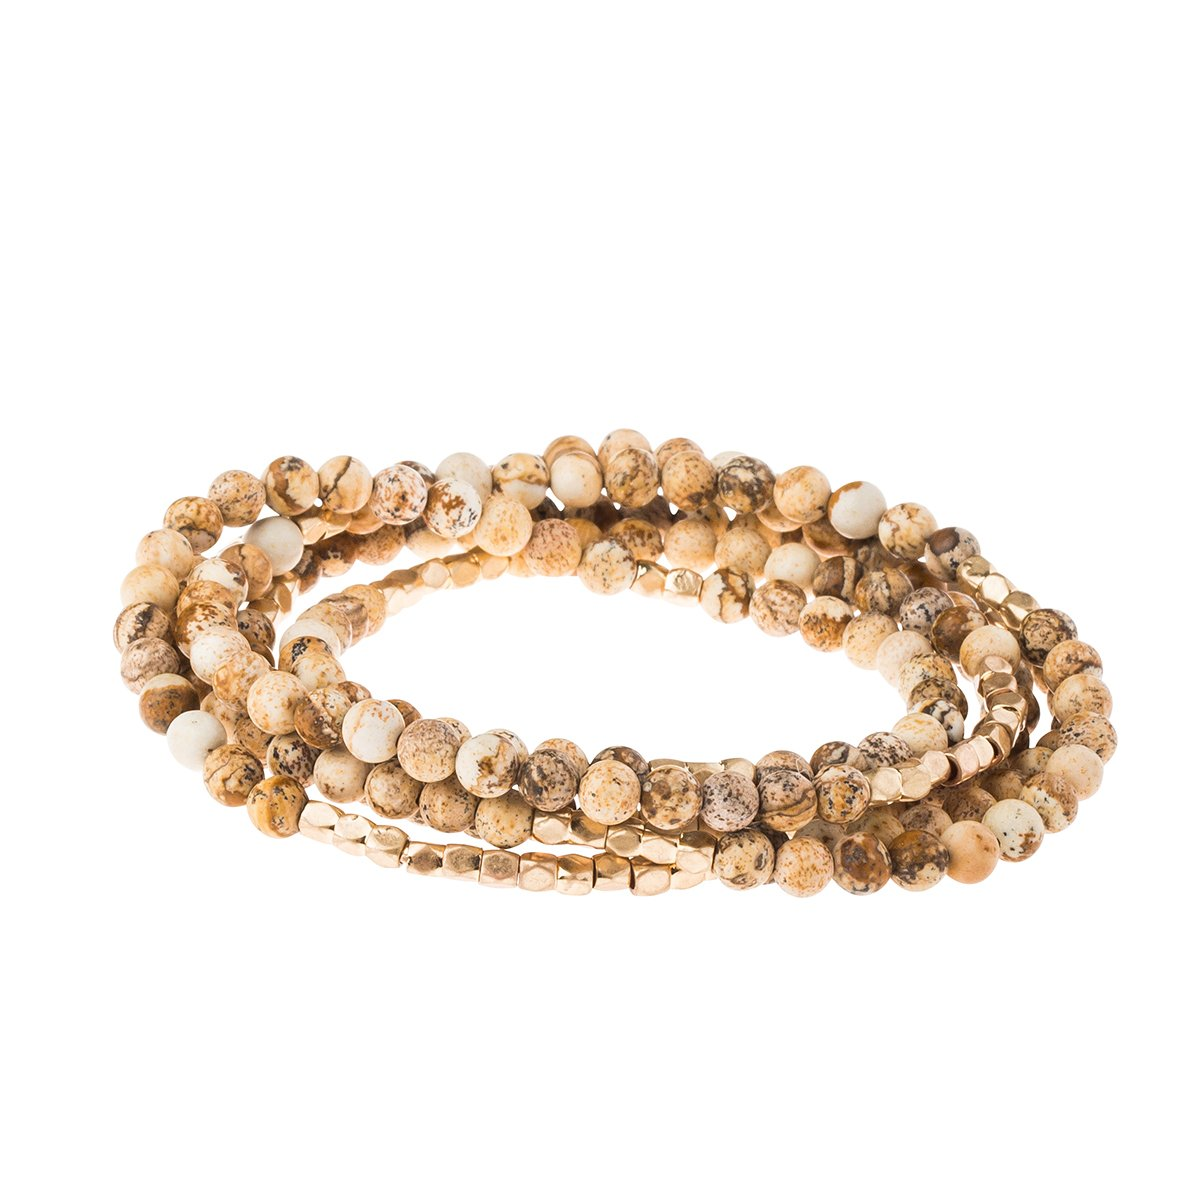 maifan bracelet s michael products bracelets jewellery natural elasticated stone gemstone